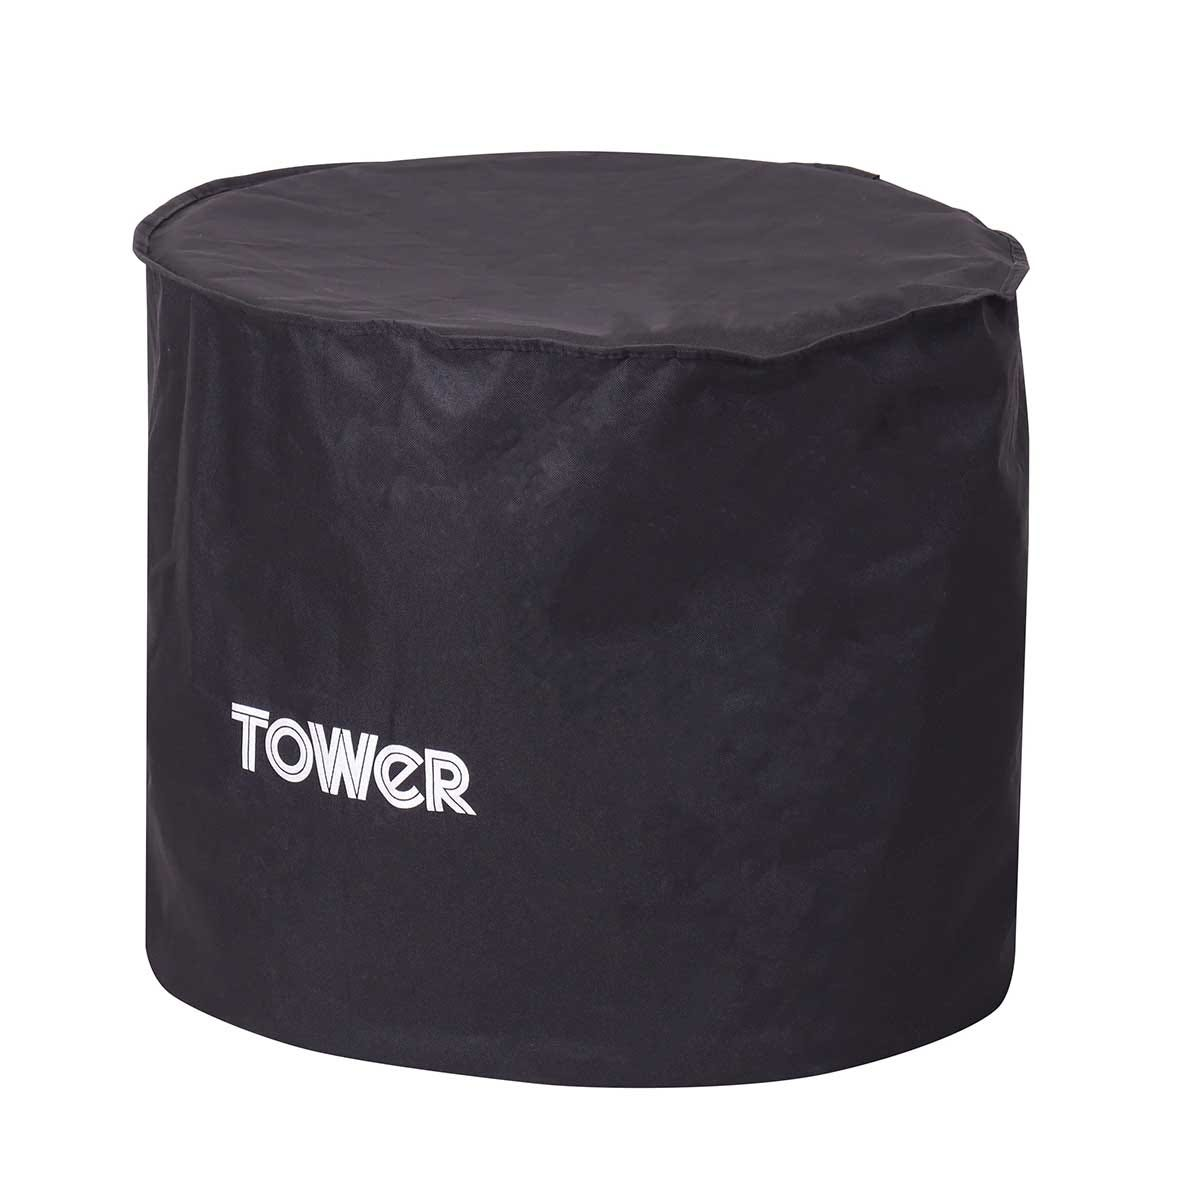 Tower 2-in-1 Fire Pit and BBQ Cover